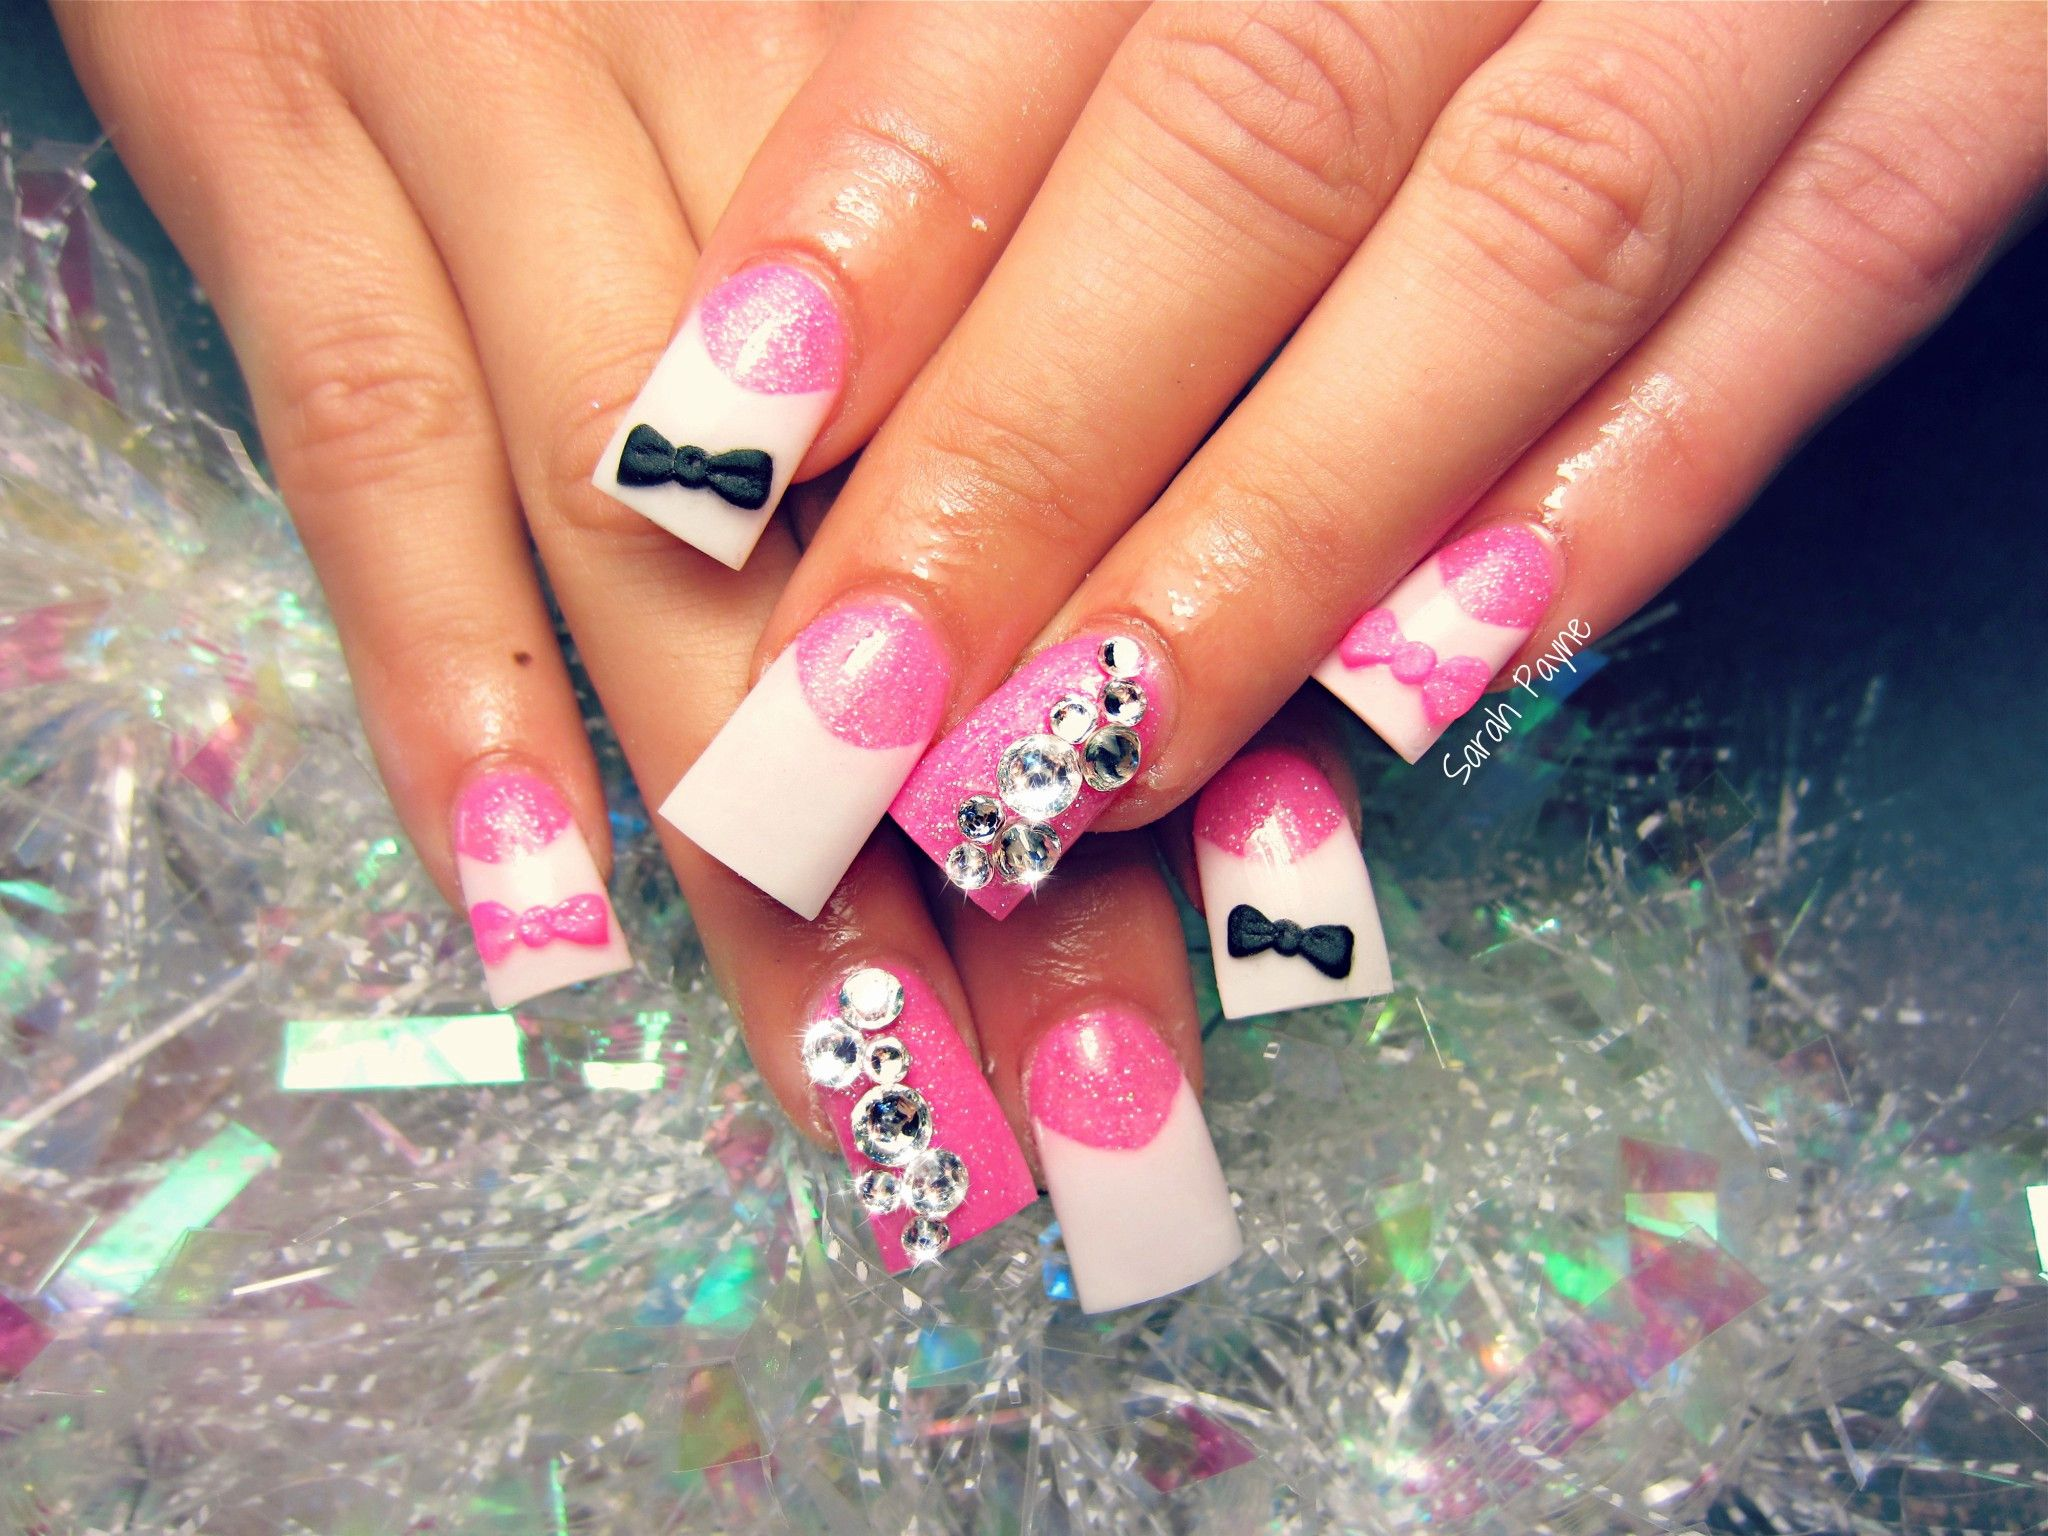 Sexy French Nail Art 3d Bows And Diamonds Nails N Things